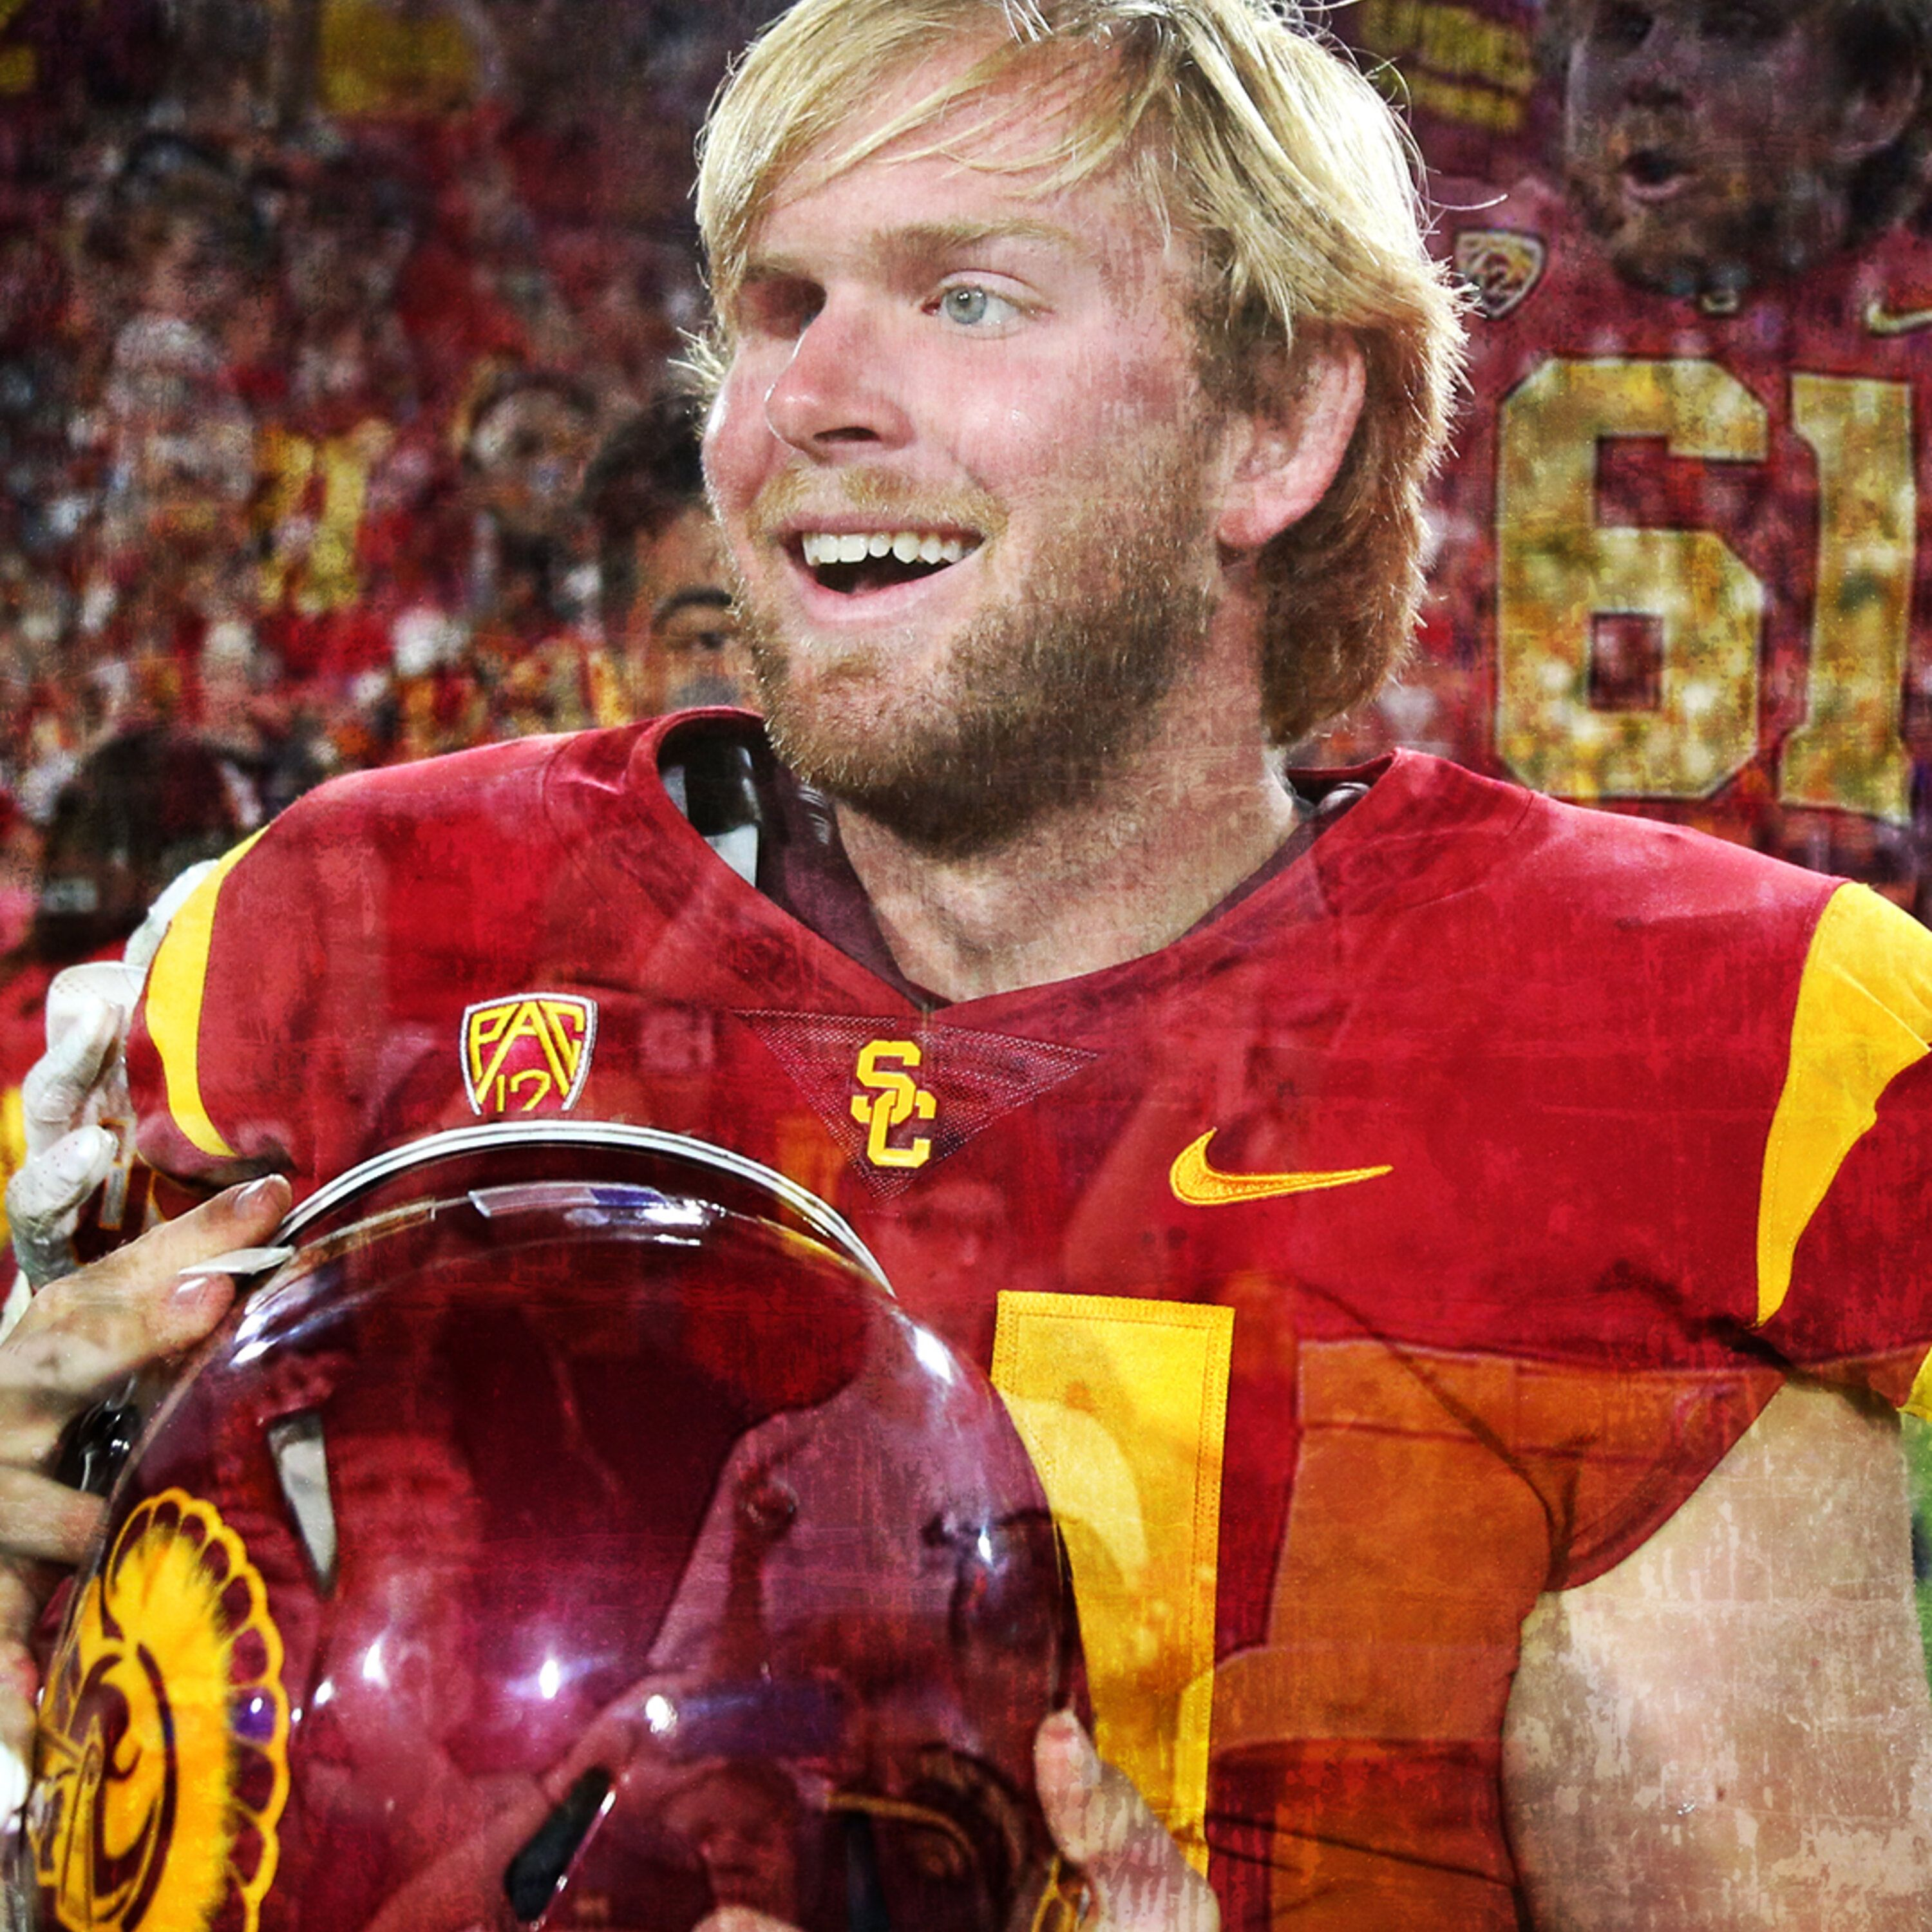 Jake Olson: Blind USC Football Longsnapper, First Completely Blind Football Player to Play in a Division I Game